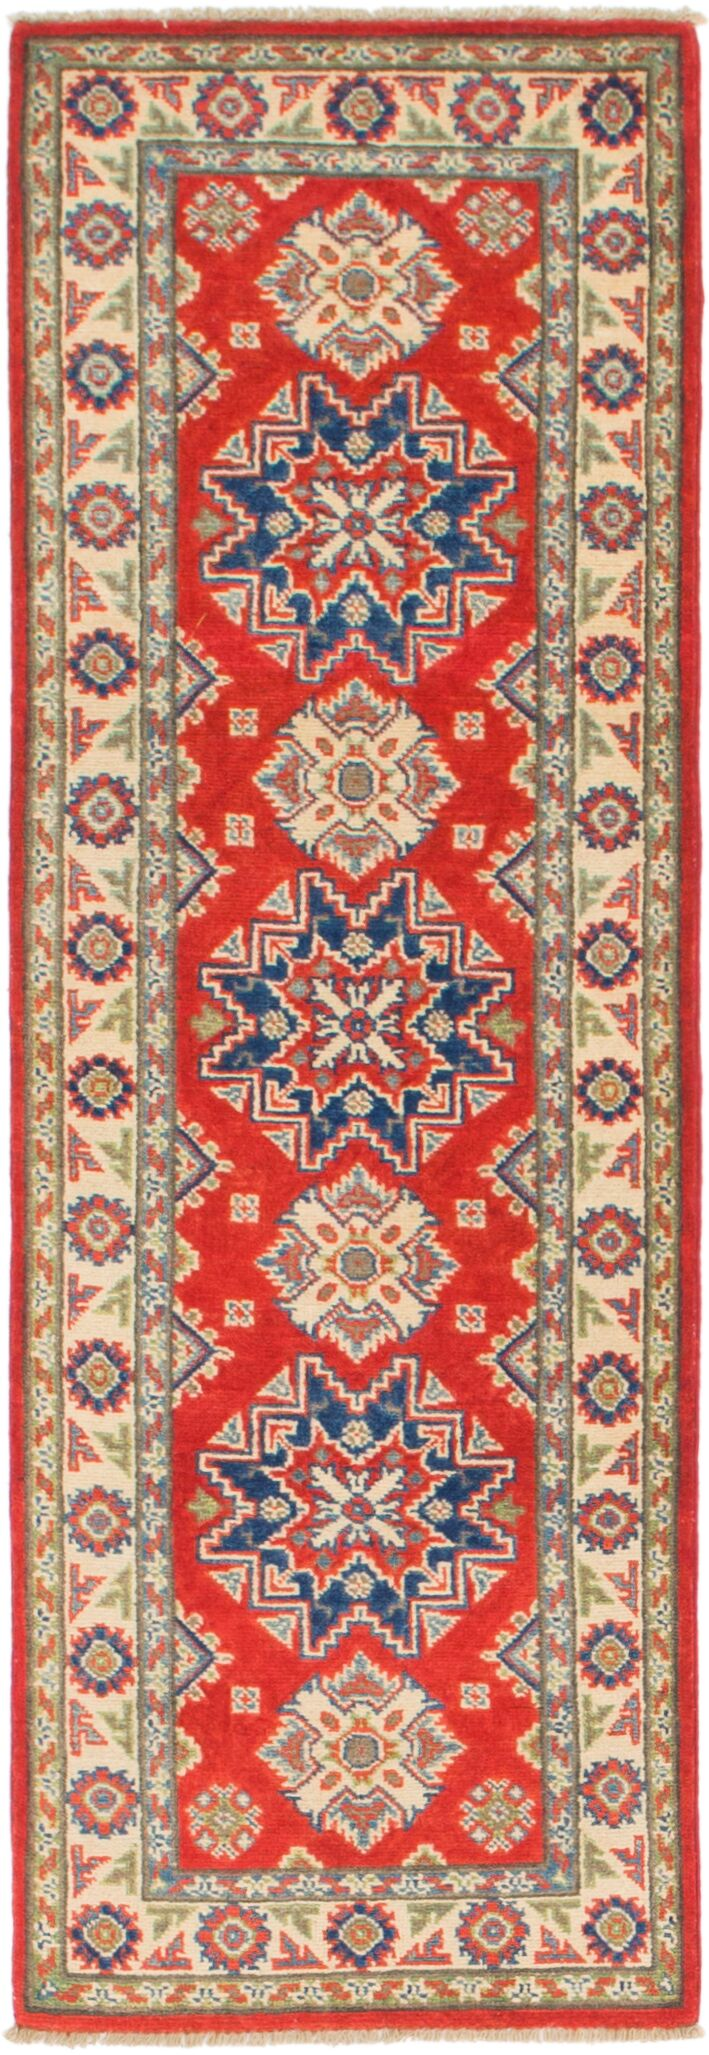 One-of-a-Kind Alayna Hand-Knotted 2' x 6' Wool Red/Beige/Blue Area Rug